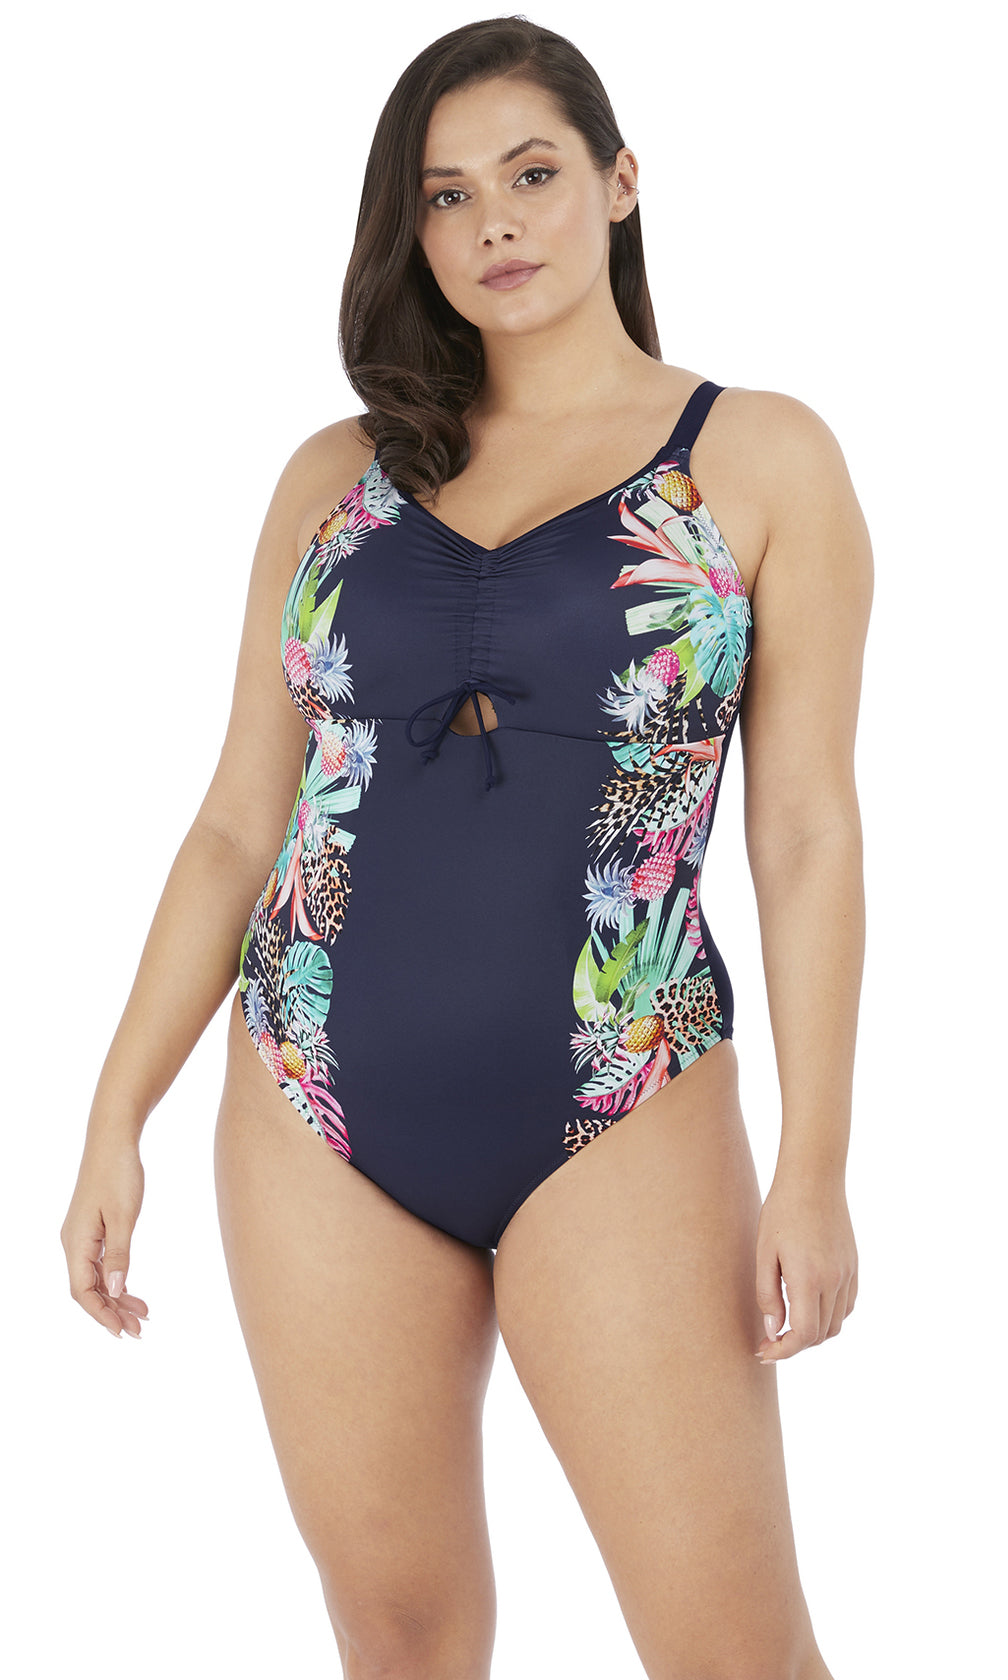 Pina Colada Midnight Non Wired Moulded Swimsuit, Pre-Order Size XL - 6 XL